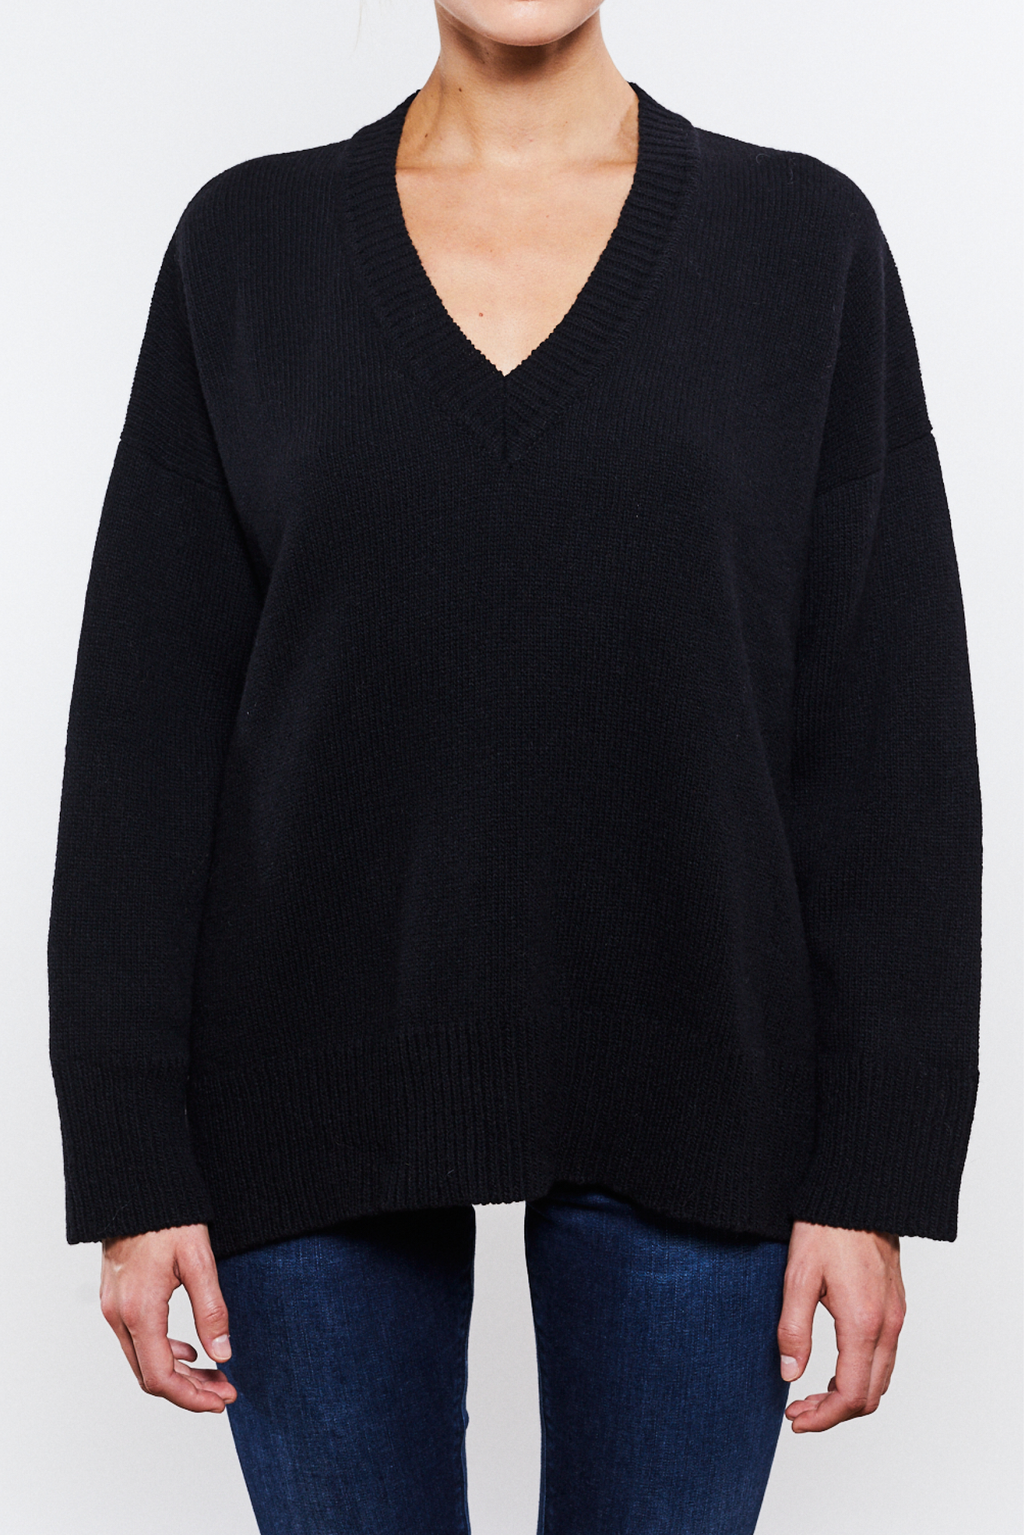 Phoebe V-neck Black